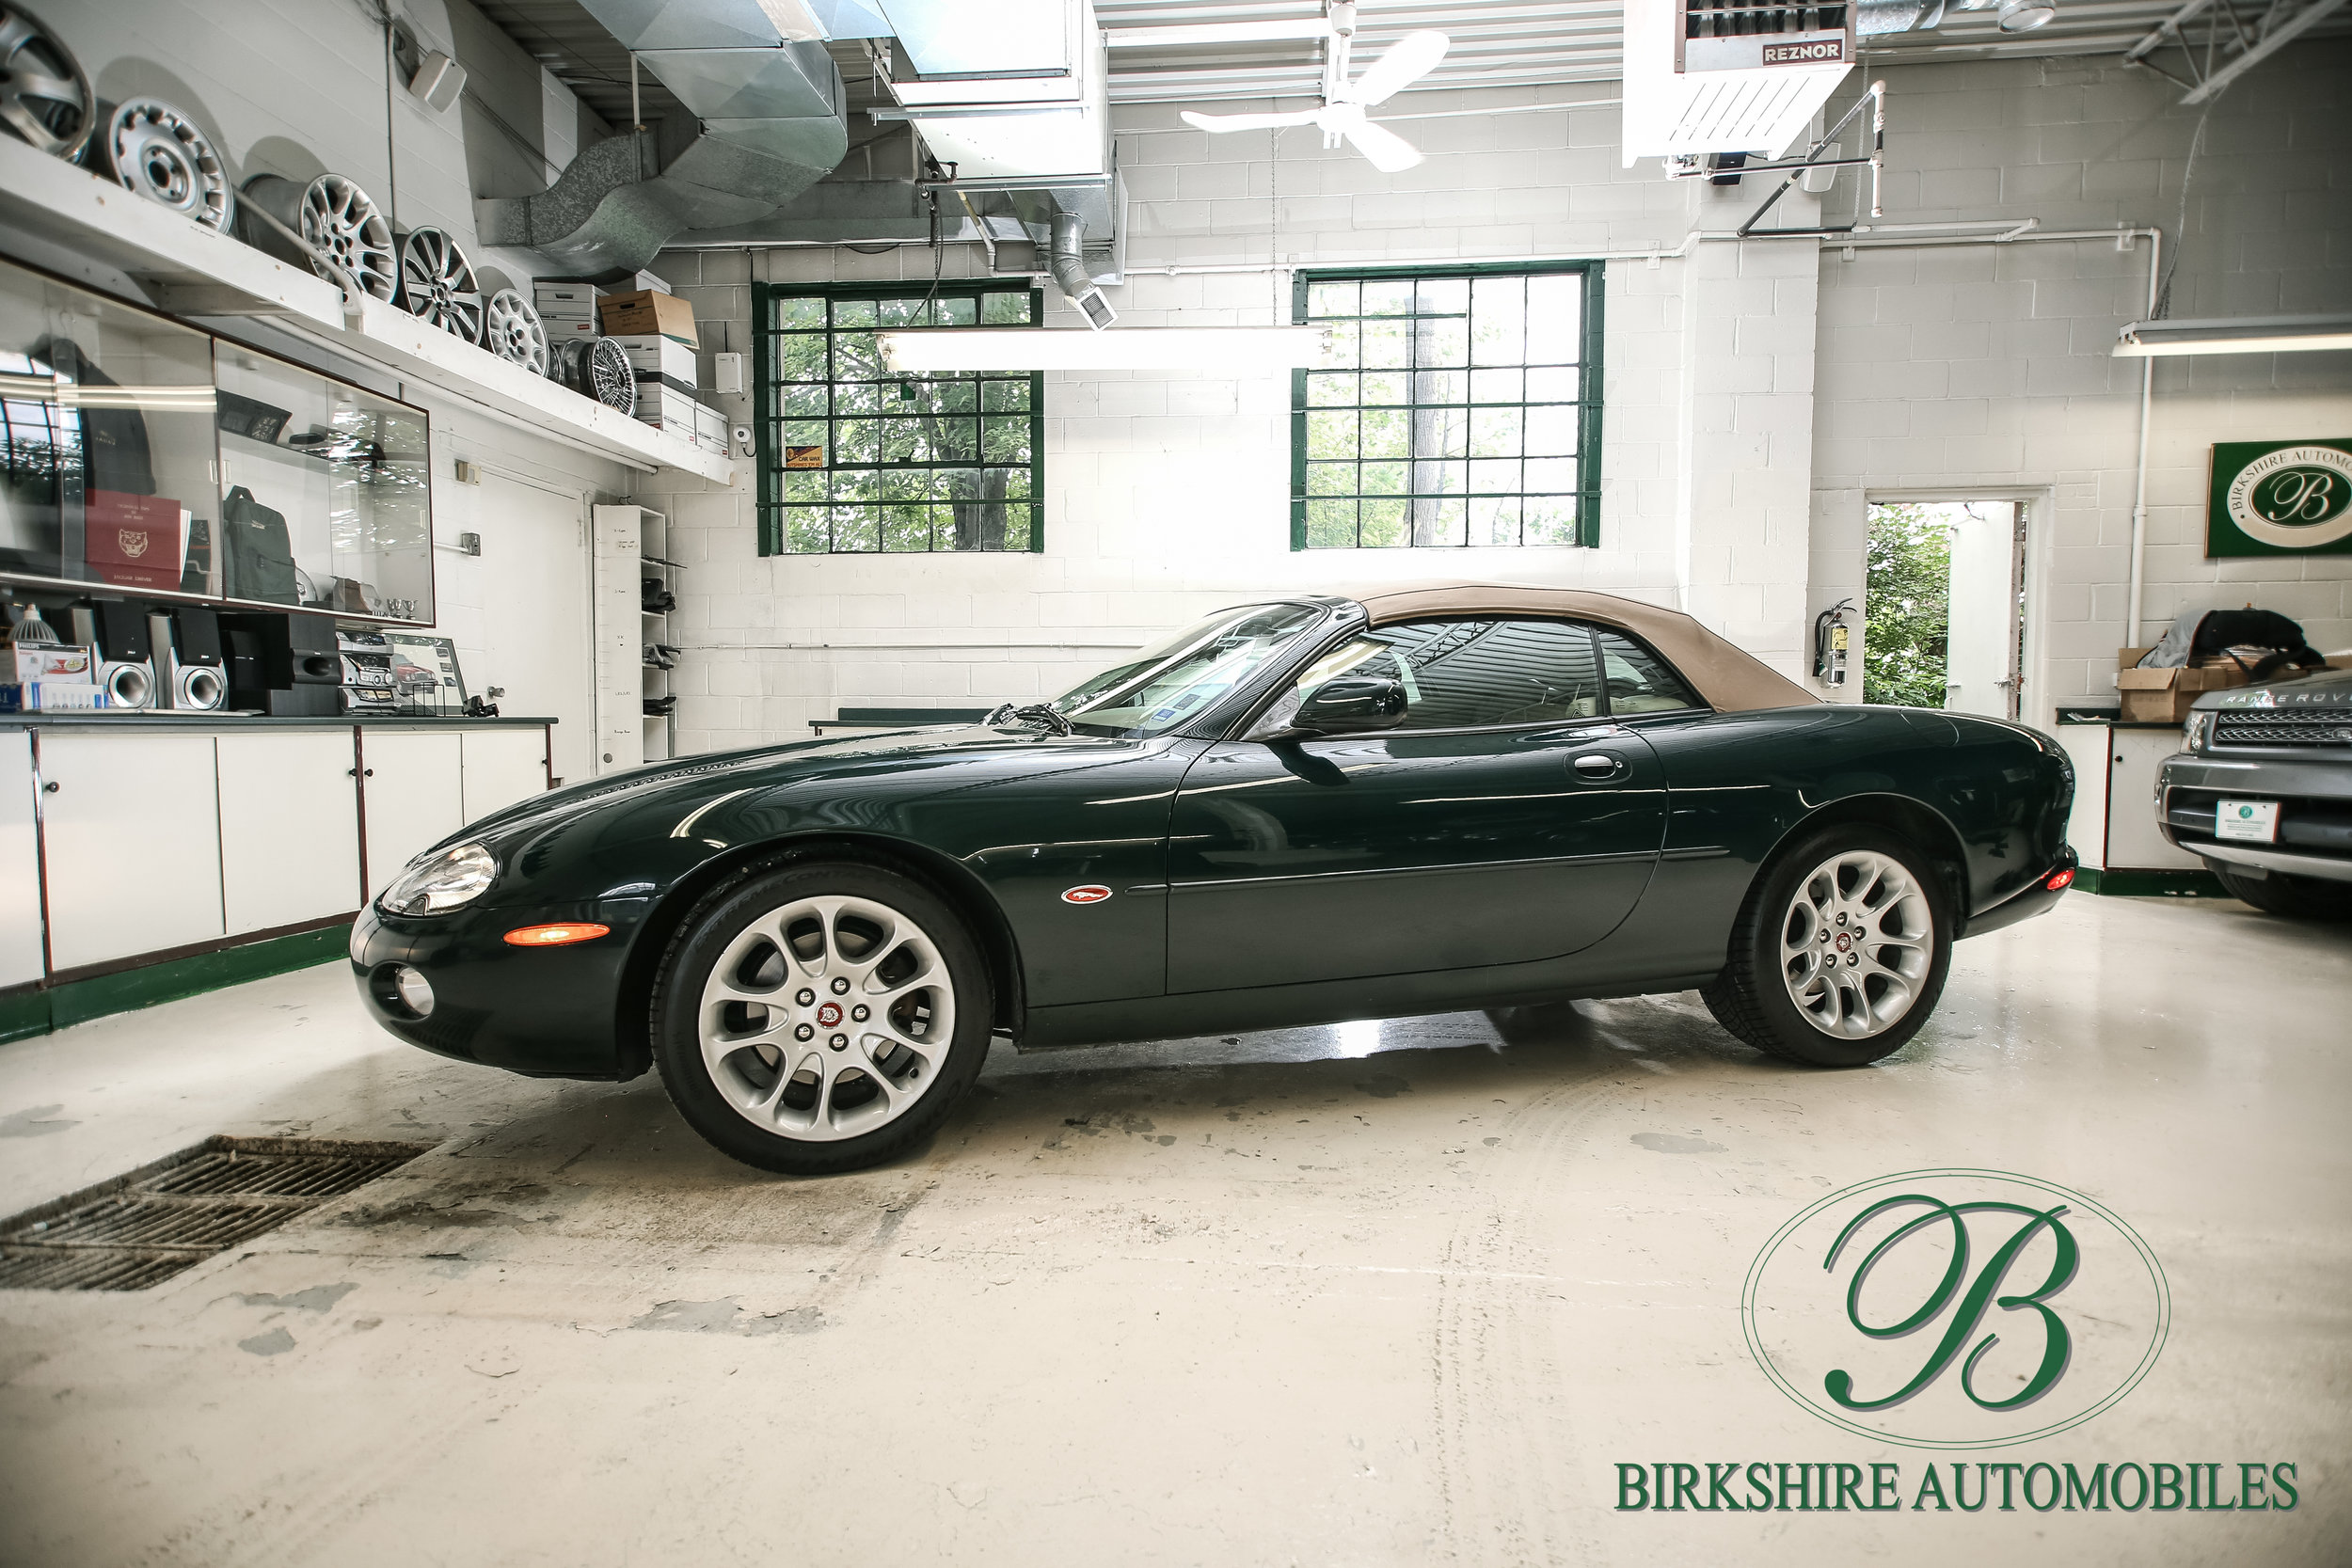 2001 Jaguar XKR Convertible - SOLD - Available in classic British Racing Green over tan leather interior and matching tan soft top.